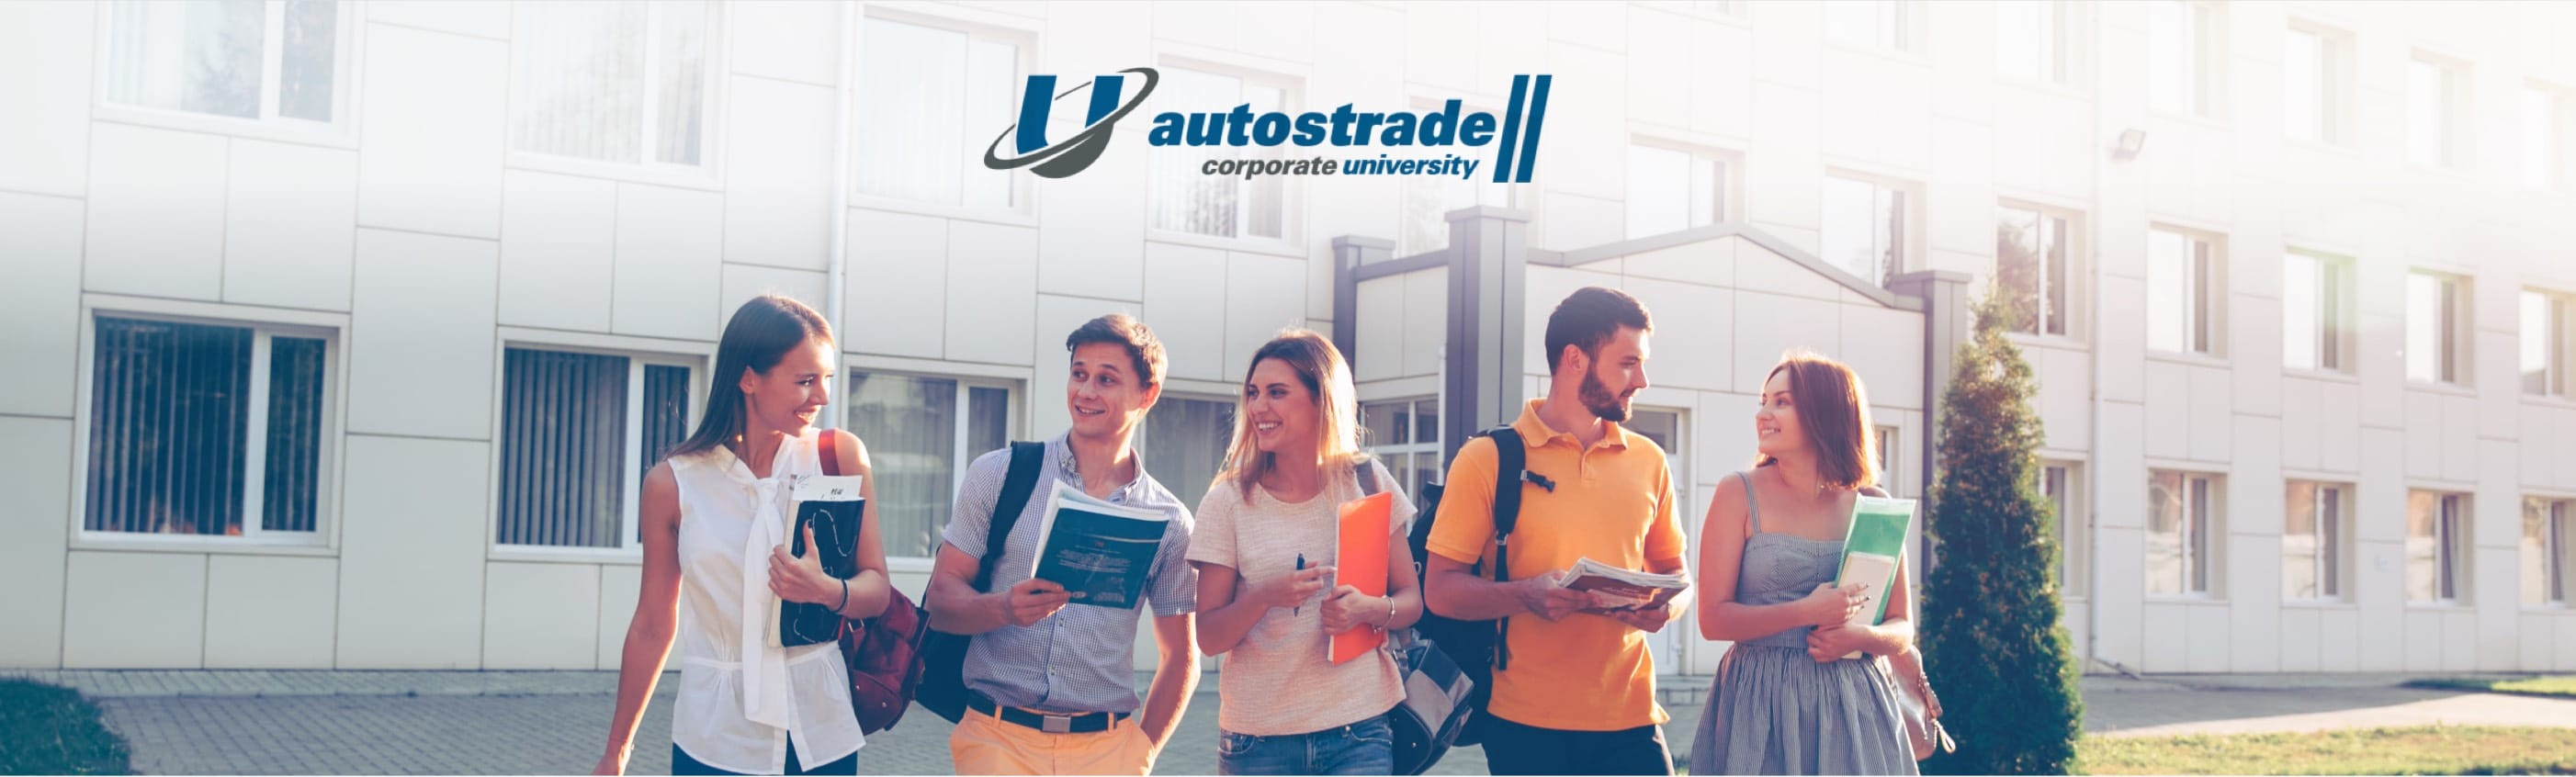 Autostrade Corporate University